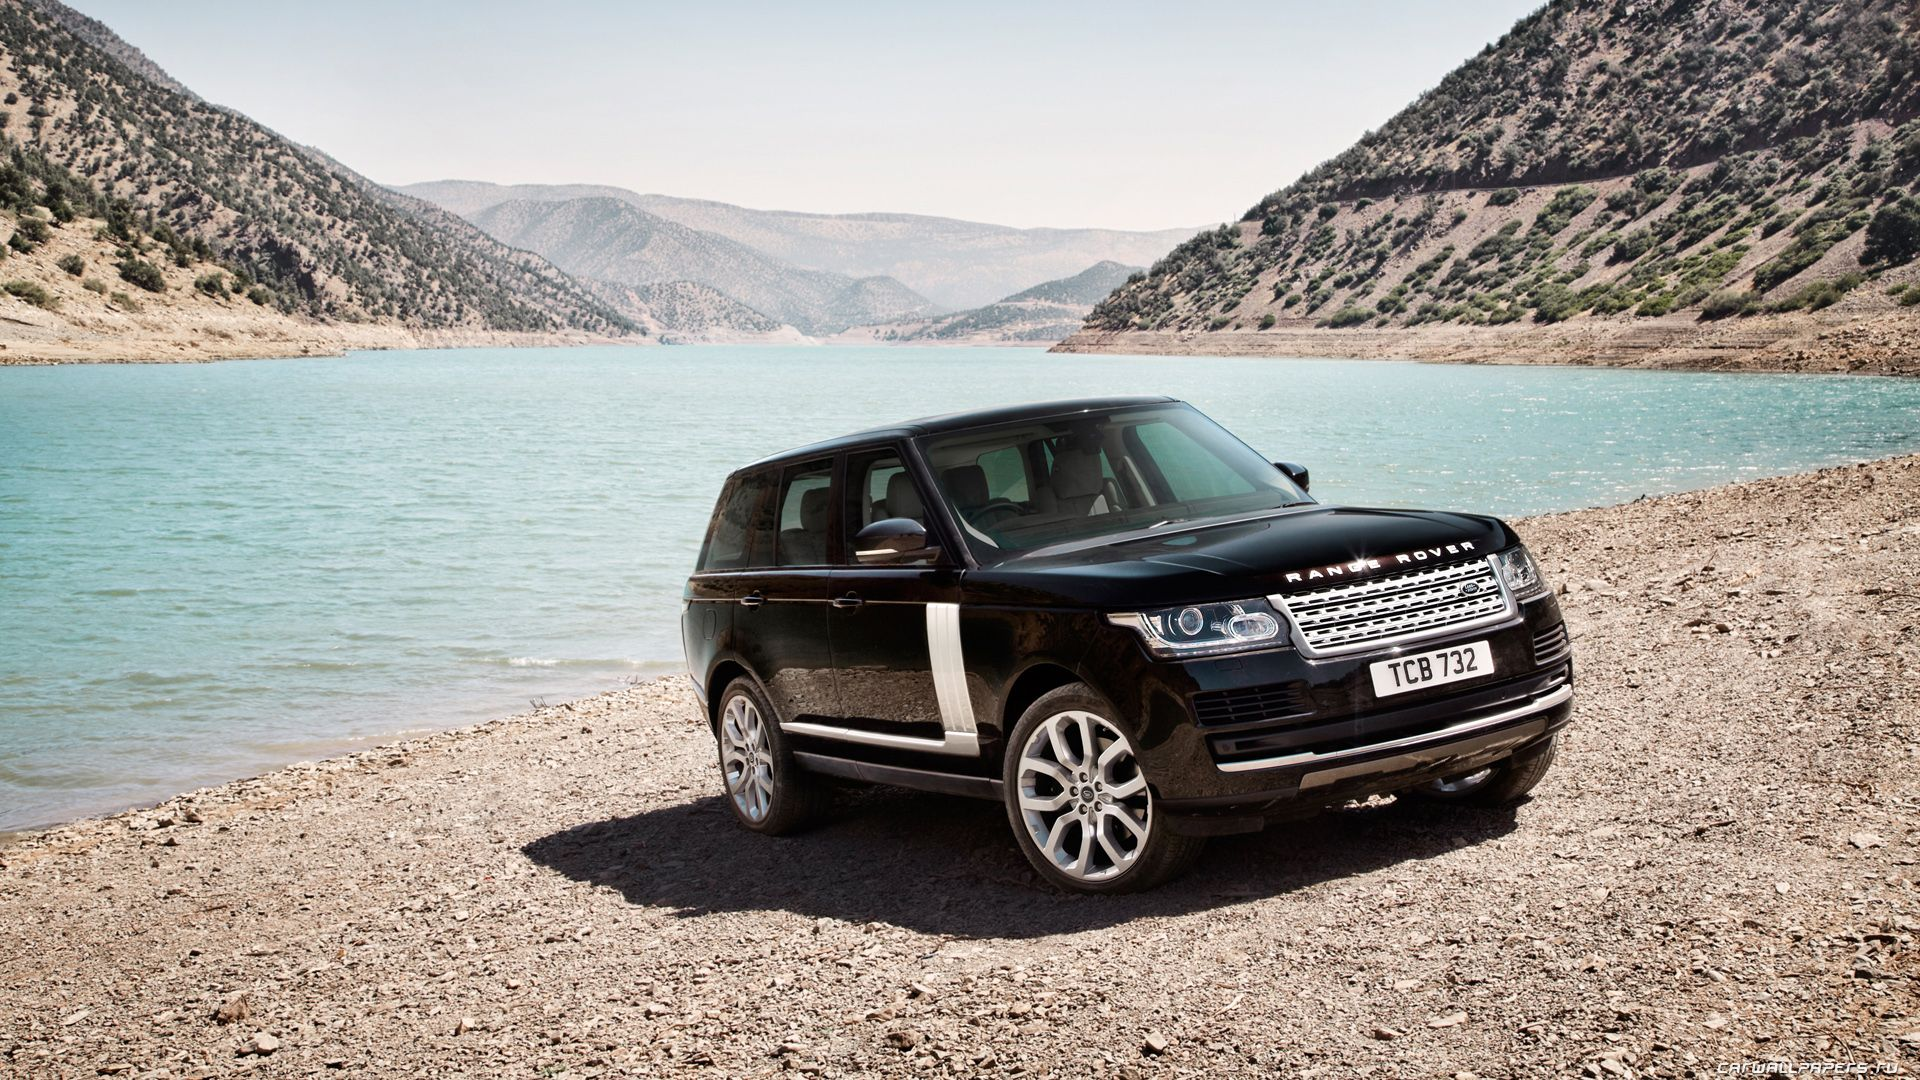 Range Rover picture image